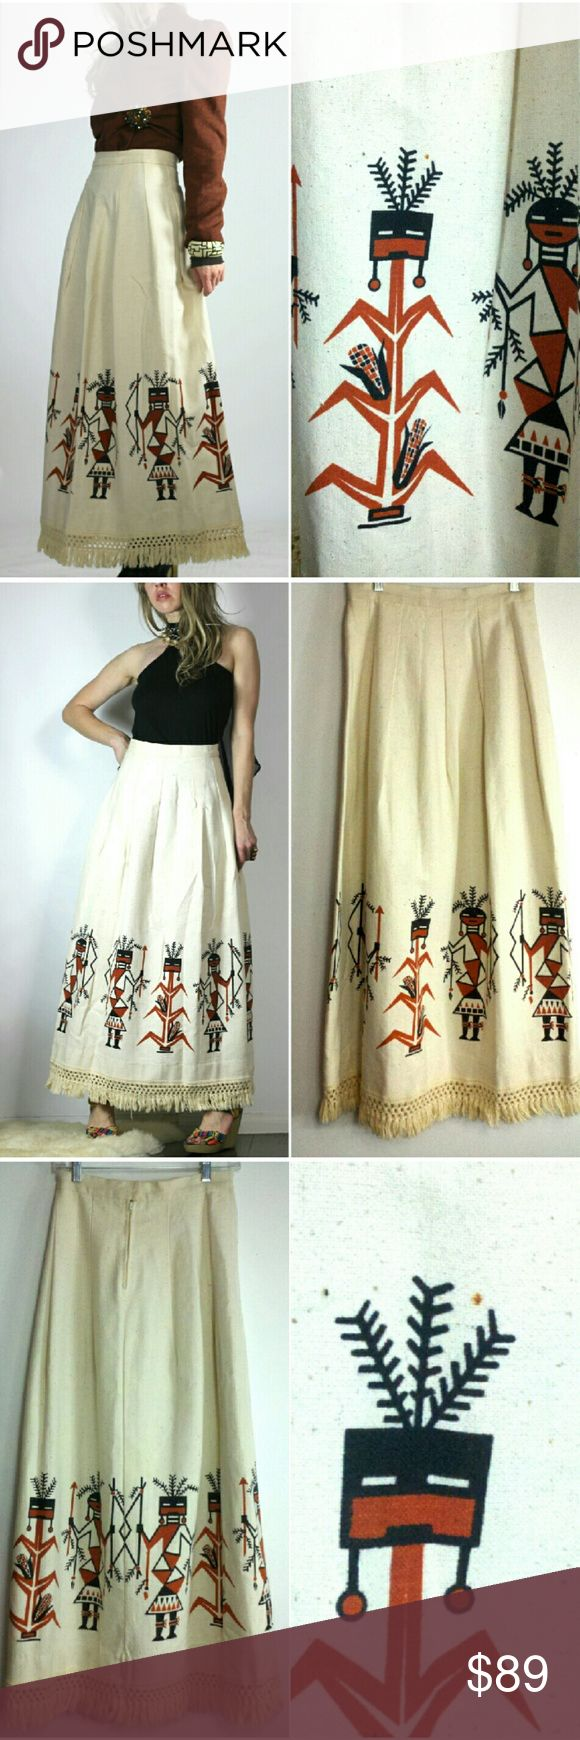 "🍄 Vintage Bohemian Warrior Maxi Skirt Cream print maxi skirt with ivory crochet detail & fringe trim  Beautiful geometric warrior print on the bottom of skirt Well constructed - rather heavy weight fabric like a canvas material Back zip + hook & eye closures & snap button at waist  No tags  Fits like: S Approx Meas:  Waist: 26"" Hip: 51"" Length: 39.5"" includes fringe  Has a tiny rust colored stain by print which you can see in the close up pic  otherwise excellent vintage condition. tags…"